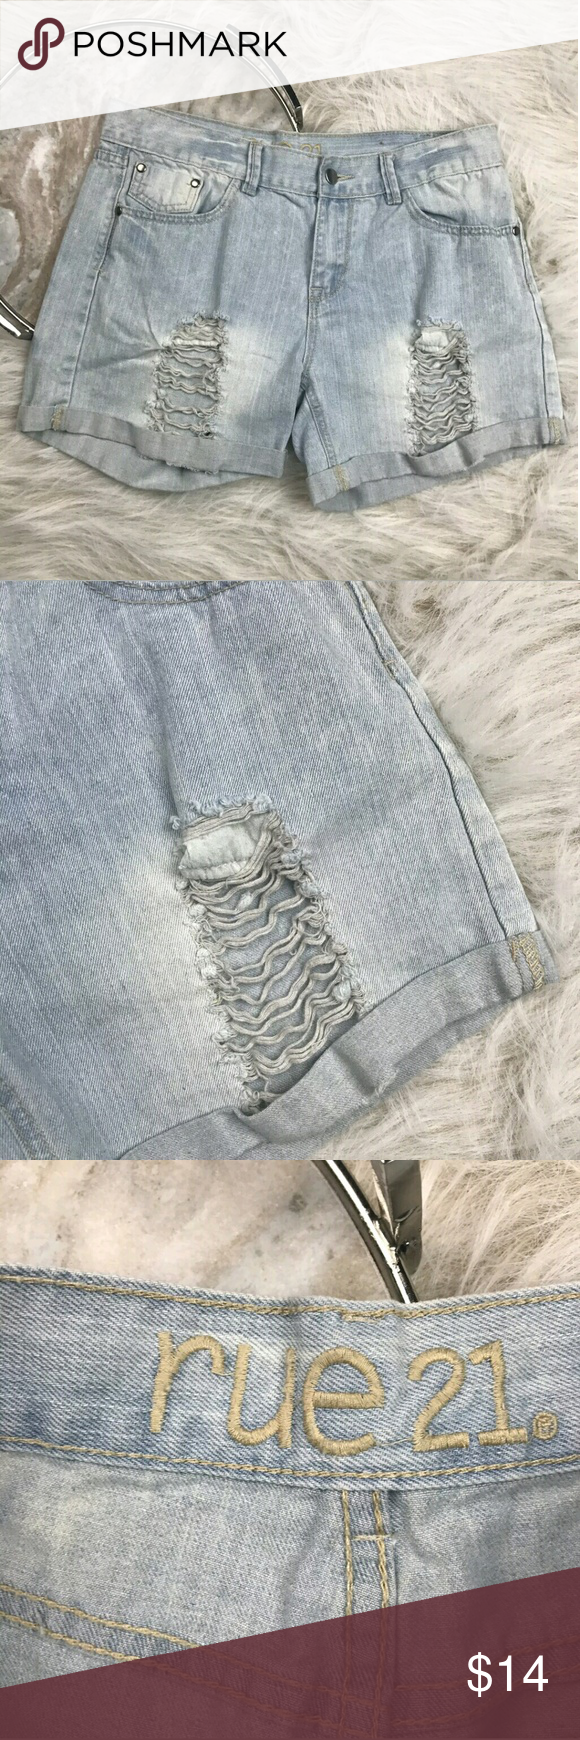 """Rue 21 Mom High Rise Shorts Rue 21 light wash high rise distressed cuffed jean shorts. Womens size 7/8. Gently used, without flaws. See pictures for details.  Waist laying flat - 16"""" Rise - 9"""" Inseam - 4""""  Inventory 04252017 Rue 21 Shorts Jean Shorts"""